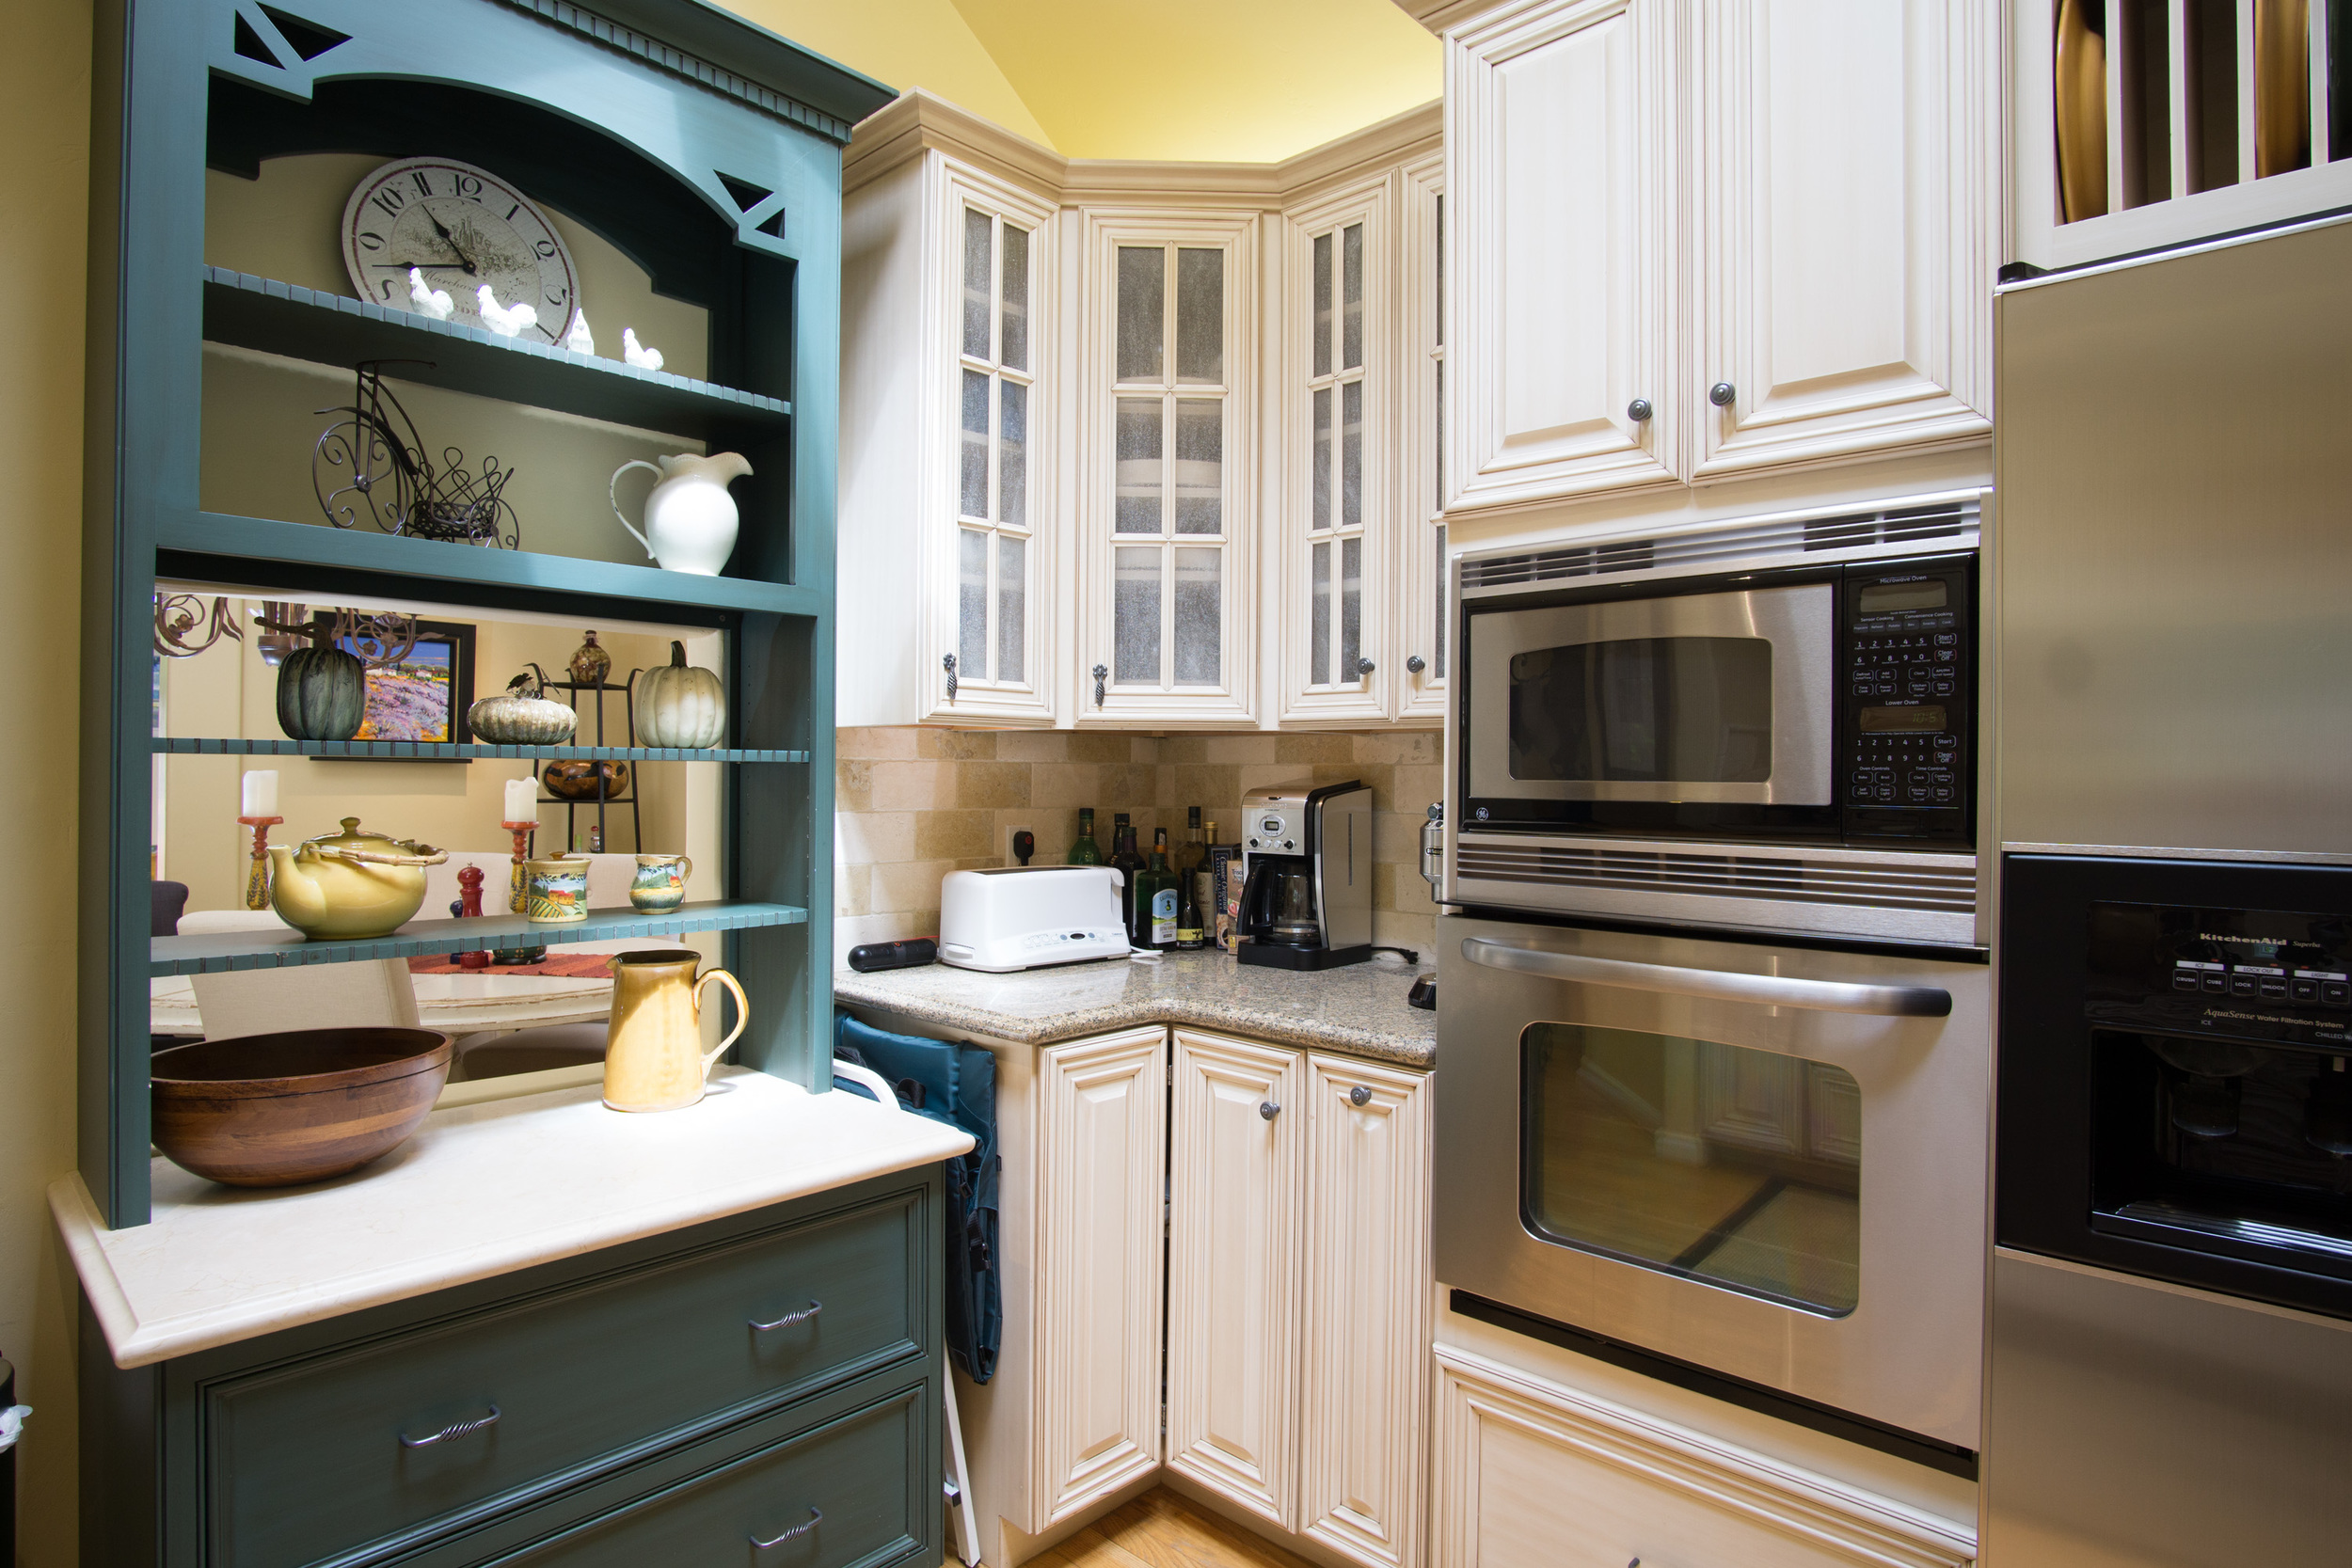 Torres11th-int-kitchen1.jpg